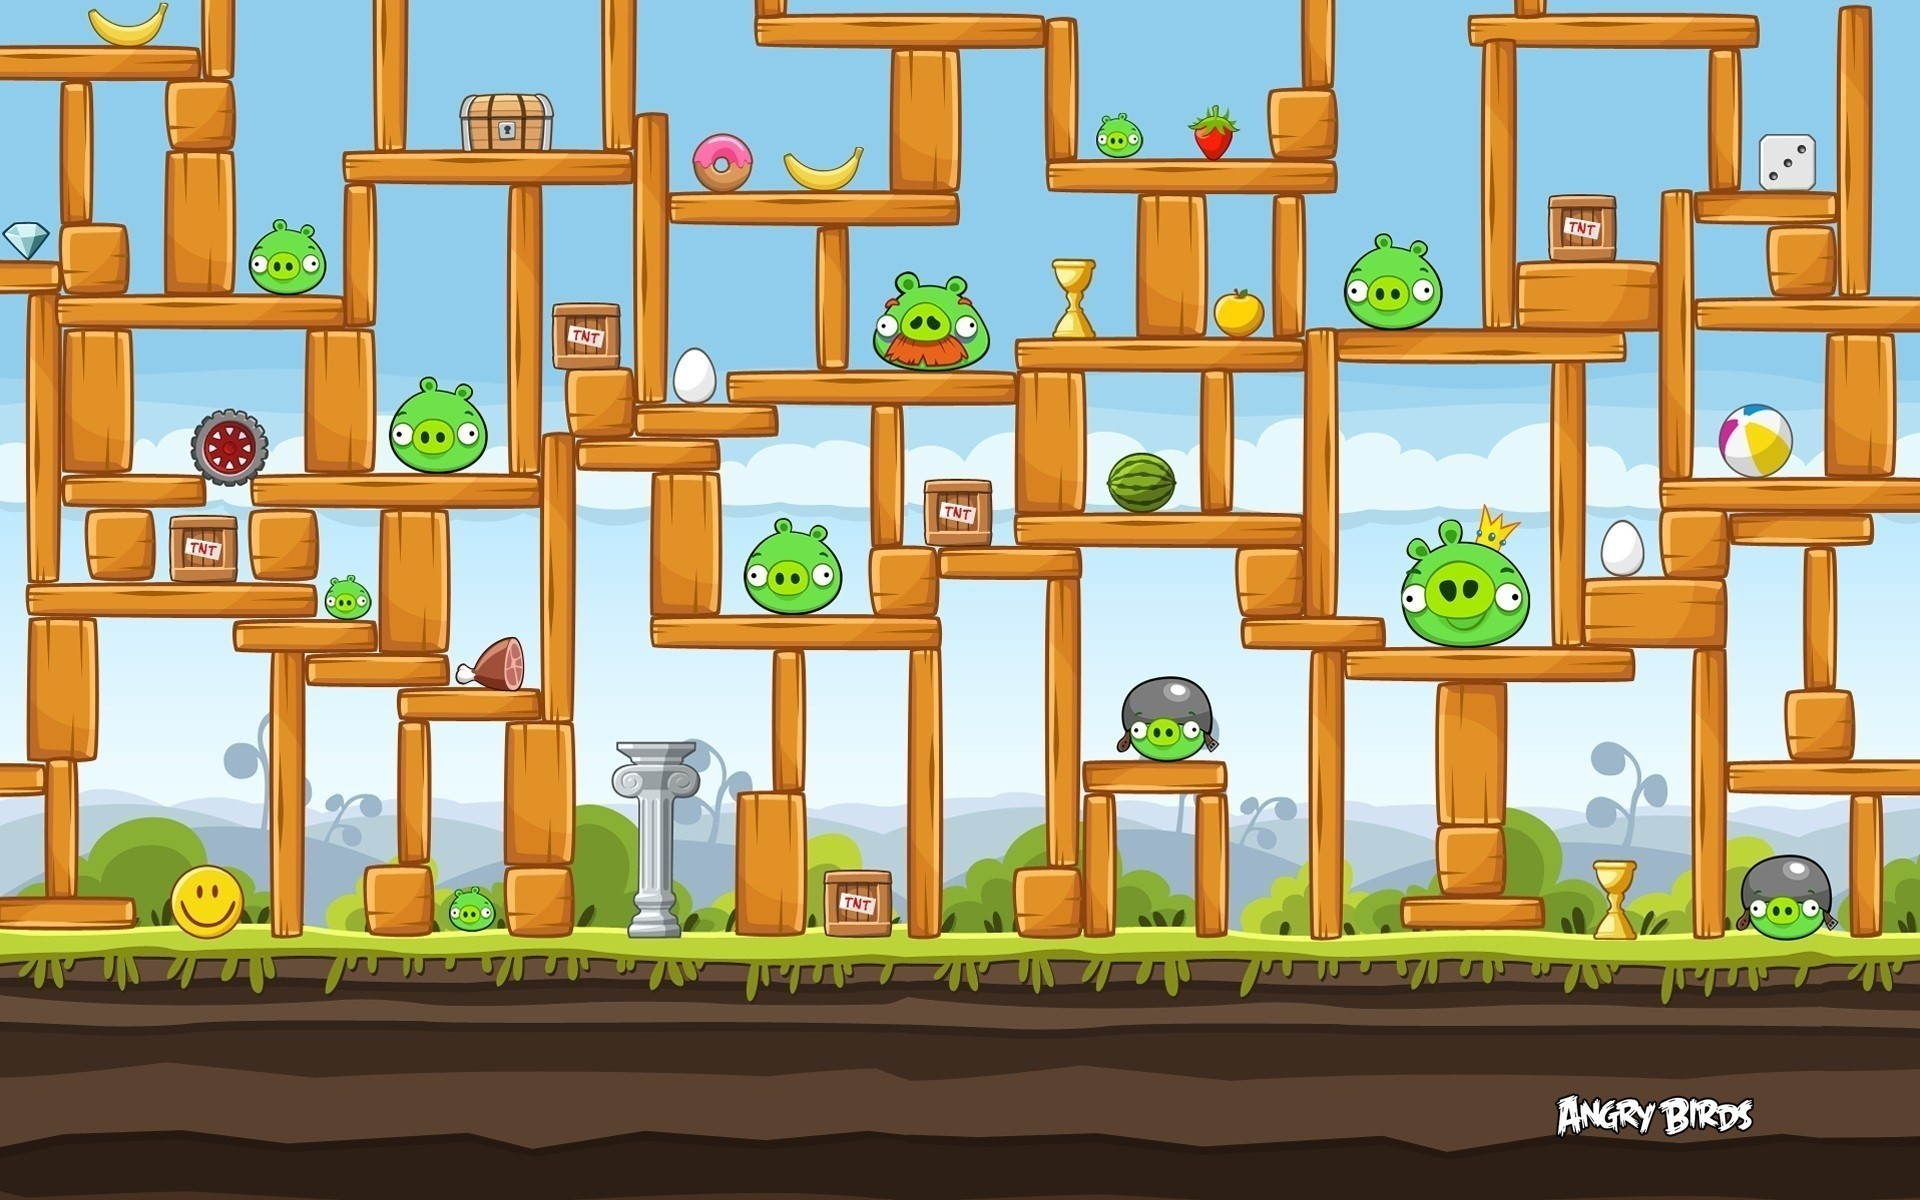 Free angry birds wallpaper background